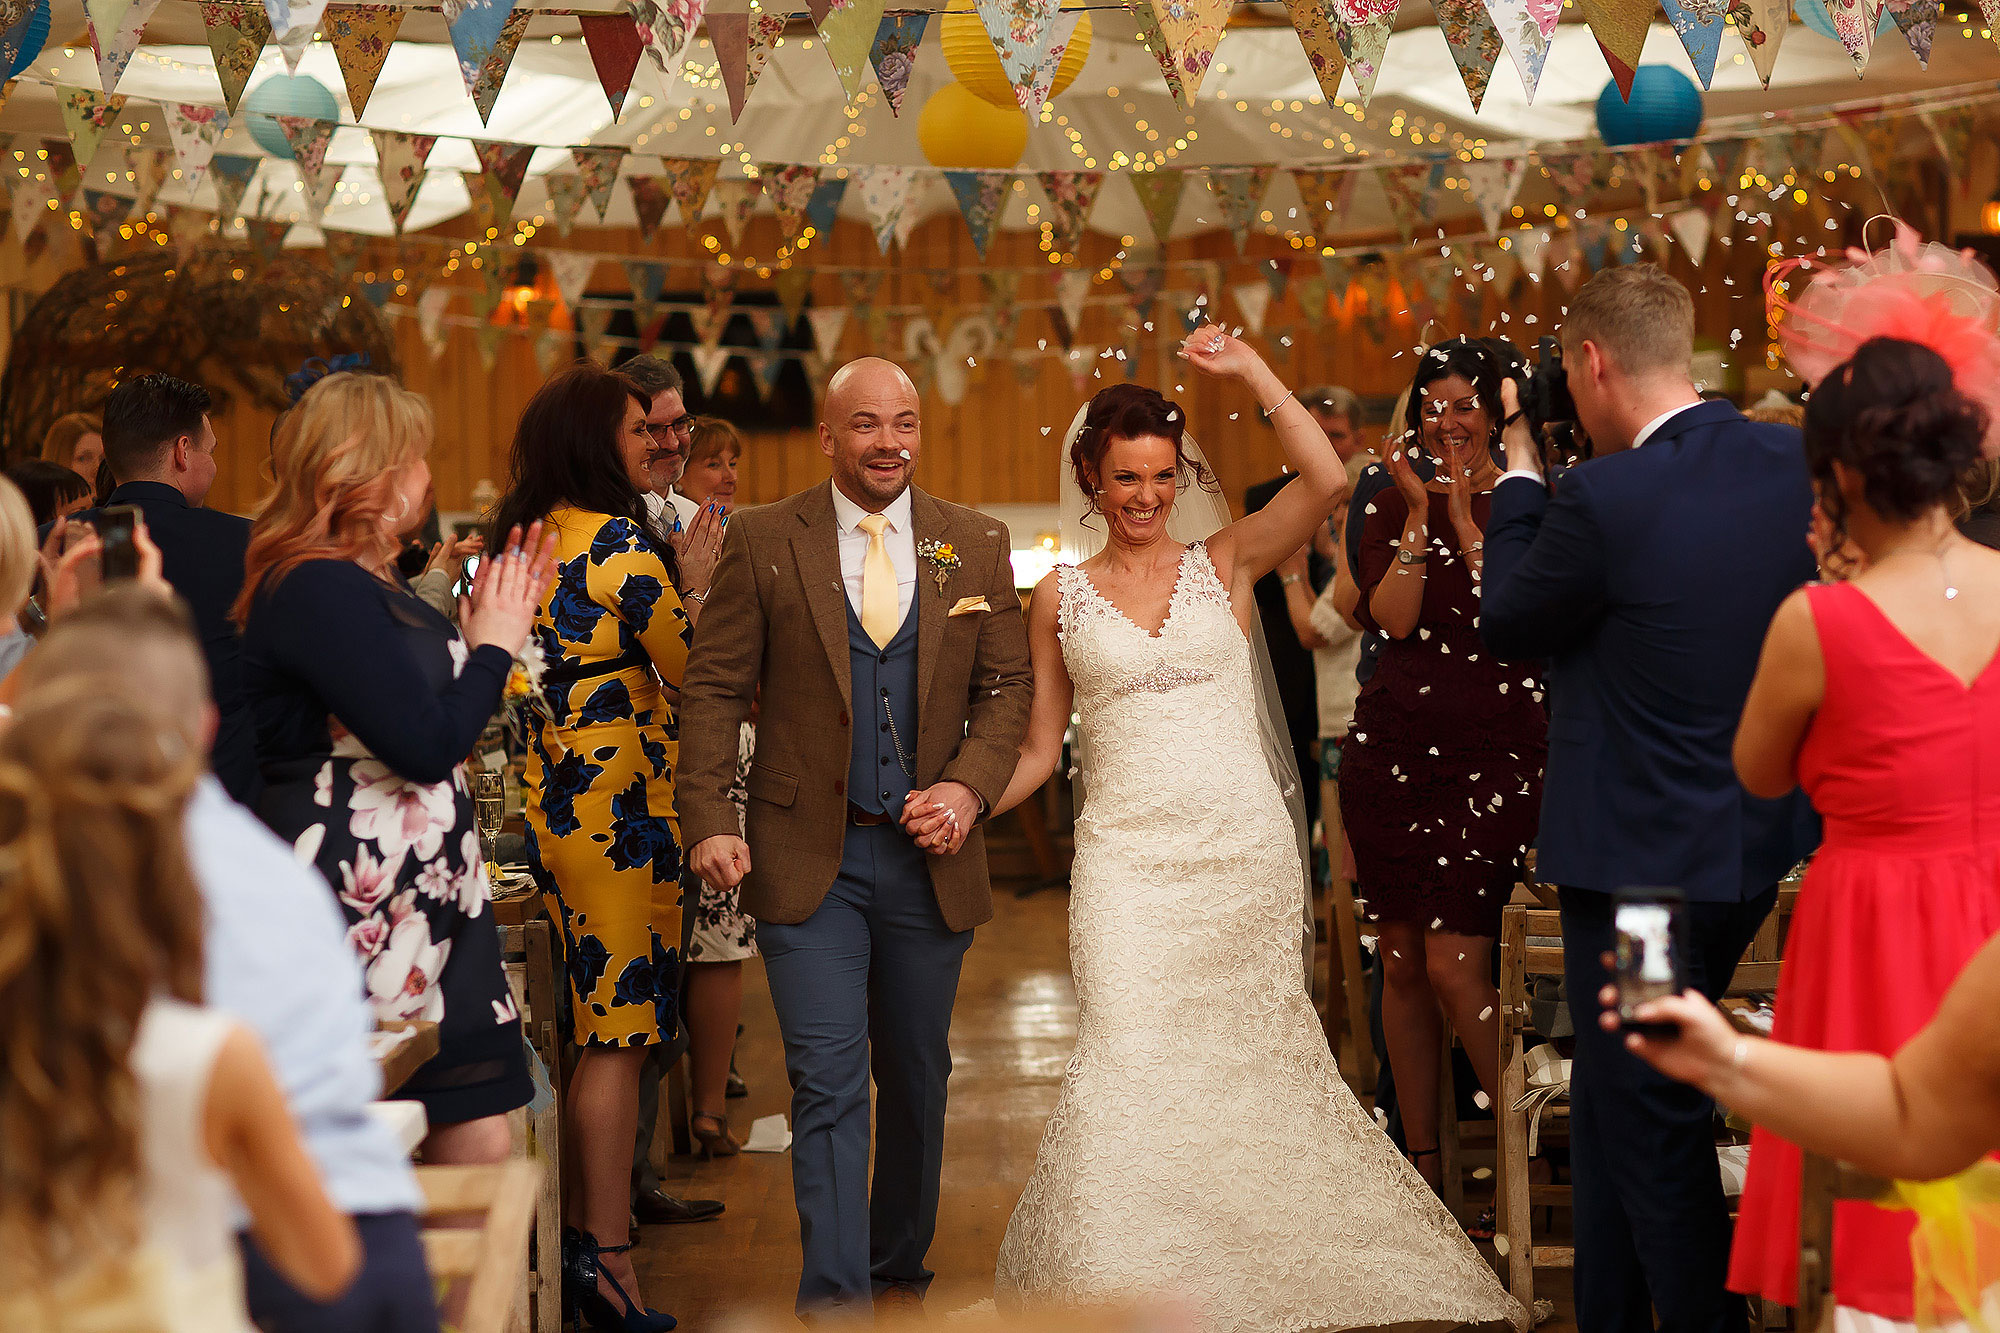 Bride and groom walking down the aisle as guests throw confetti | Summer wedding at Wellbeing Farm - Toni Darcy Photography